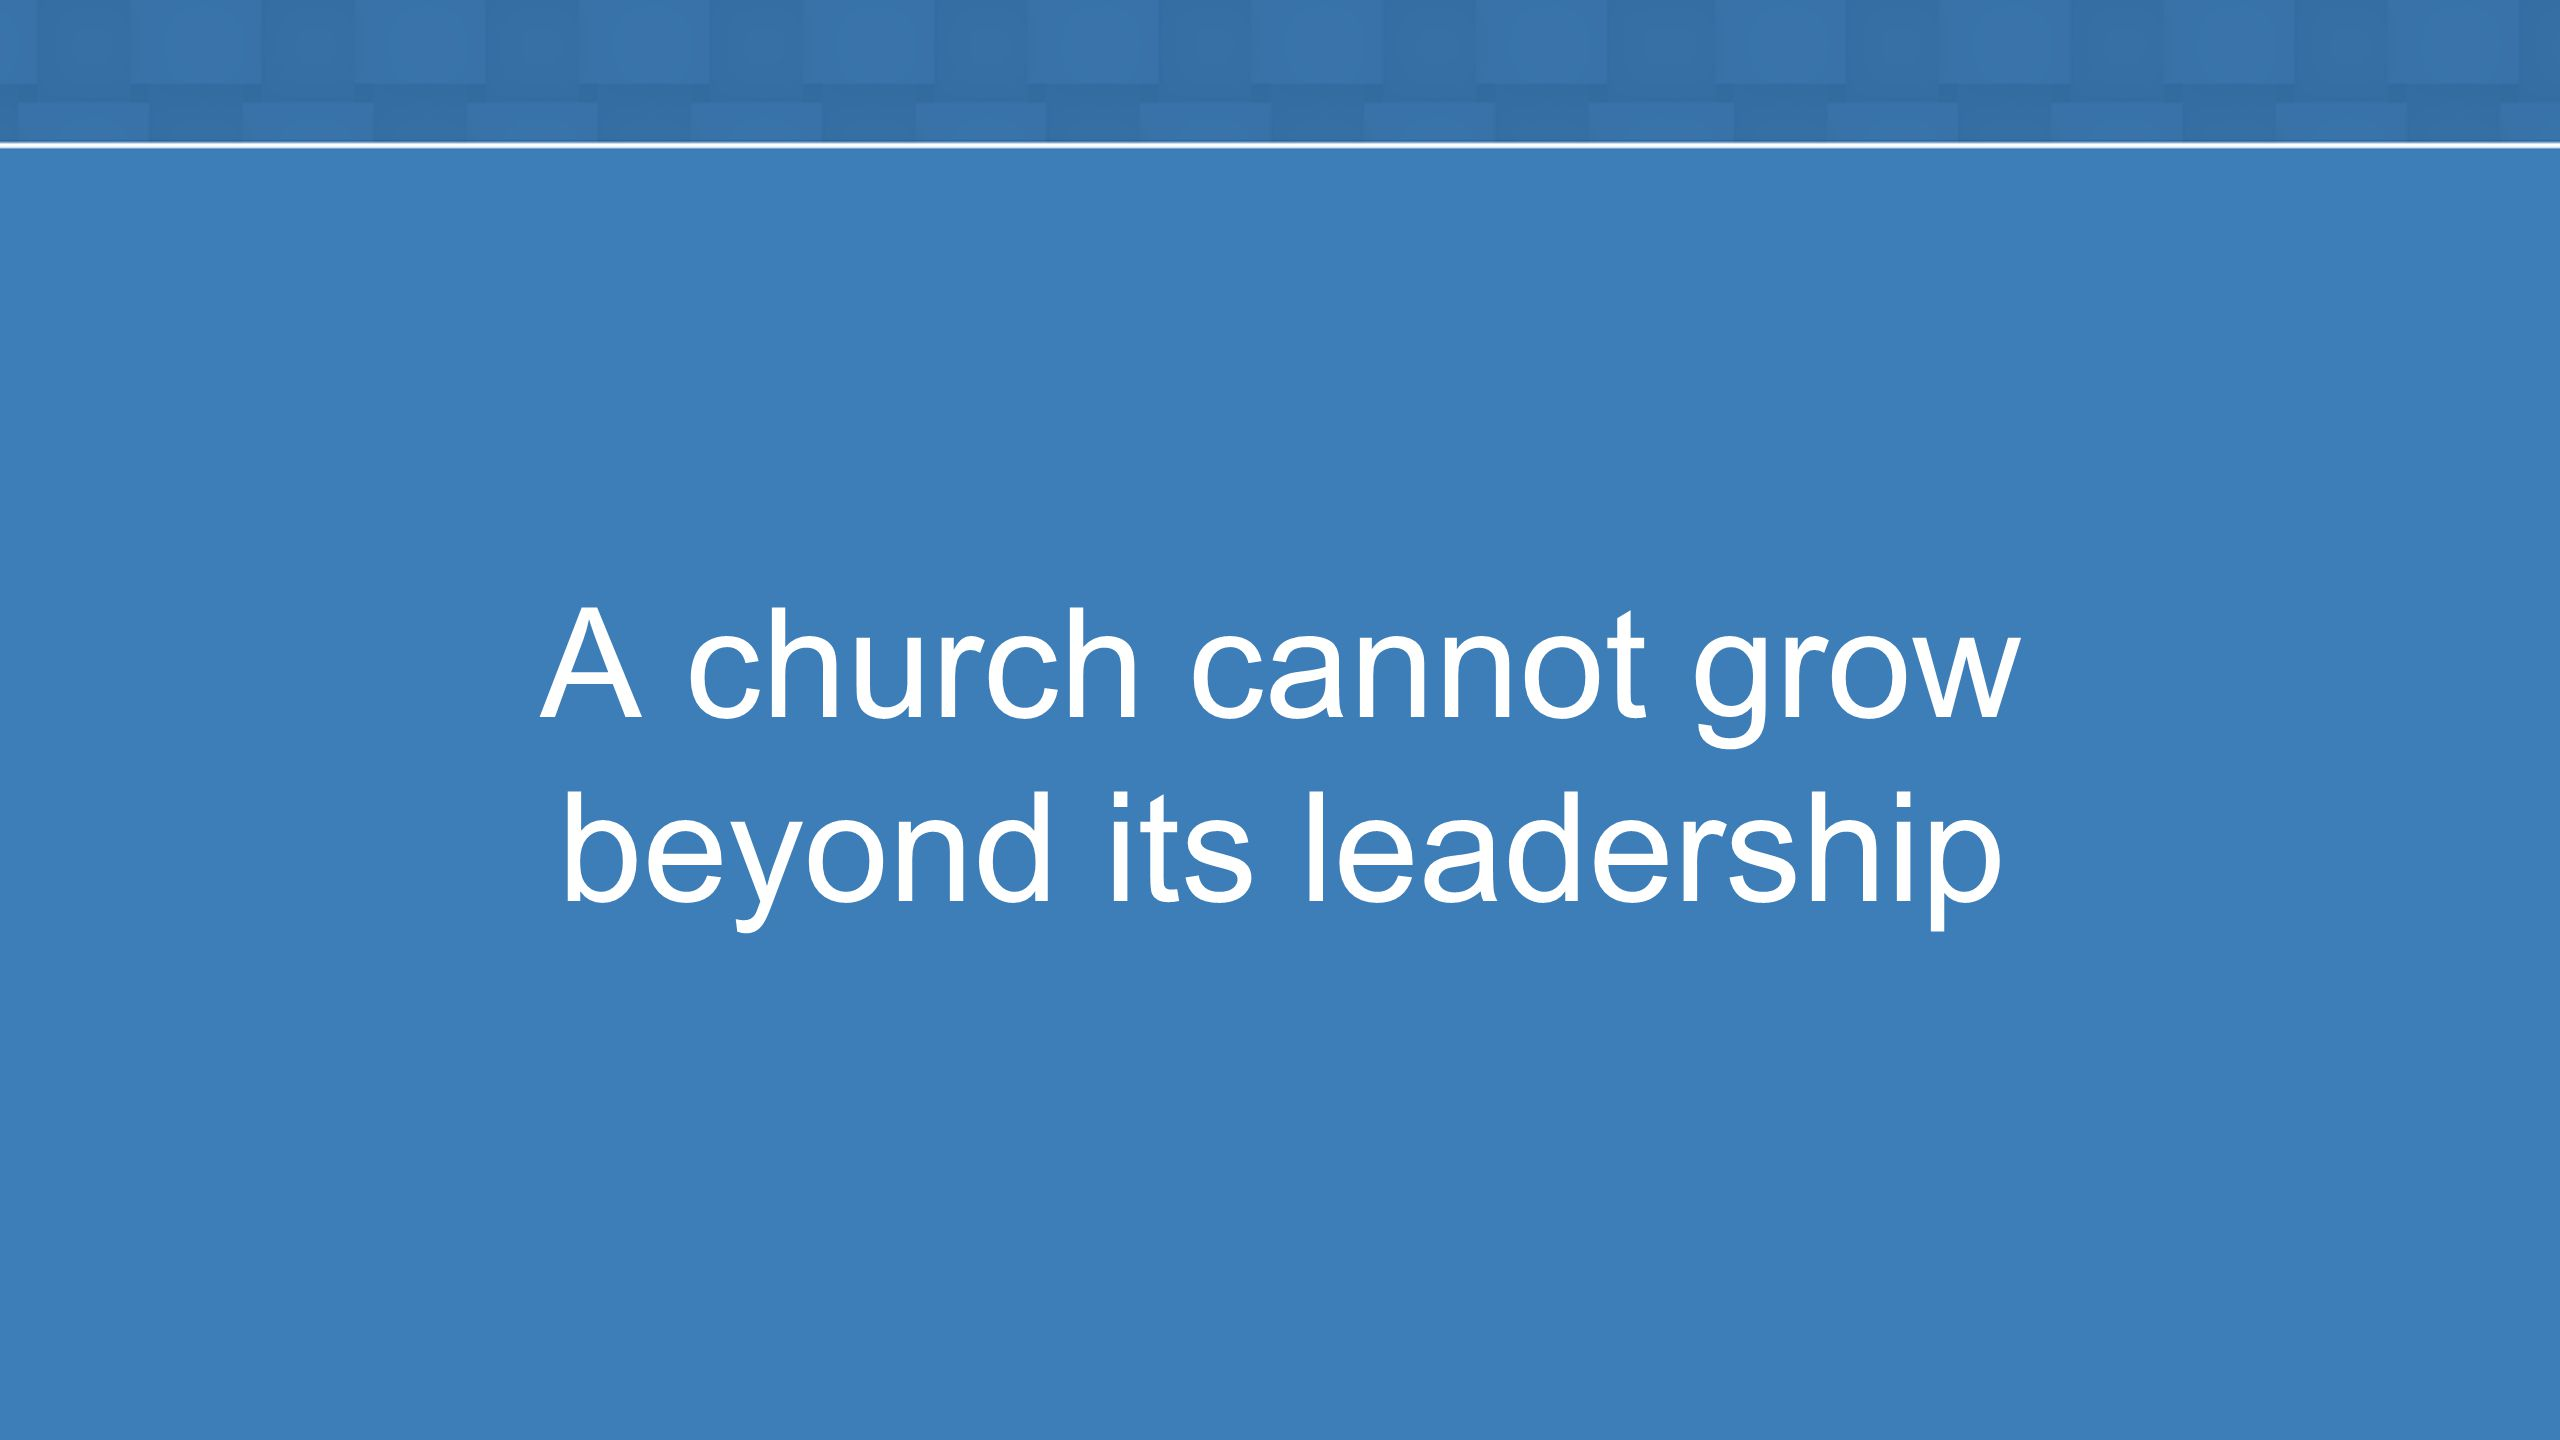 A church cannot grow beyond its leadership